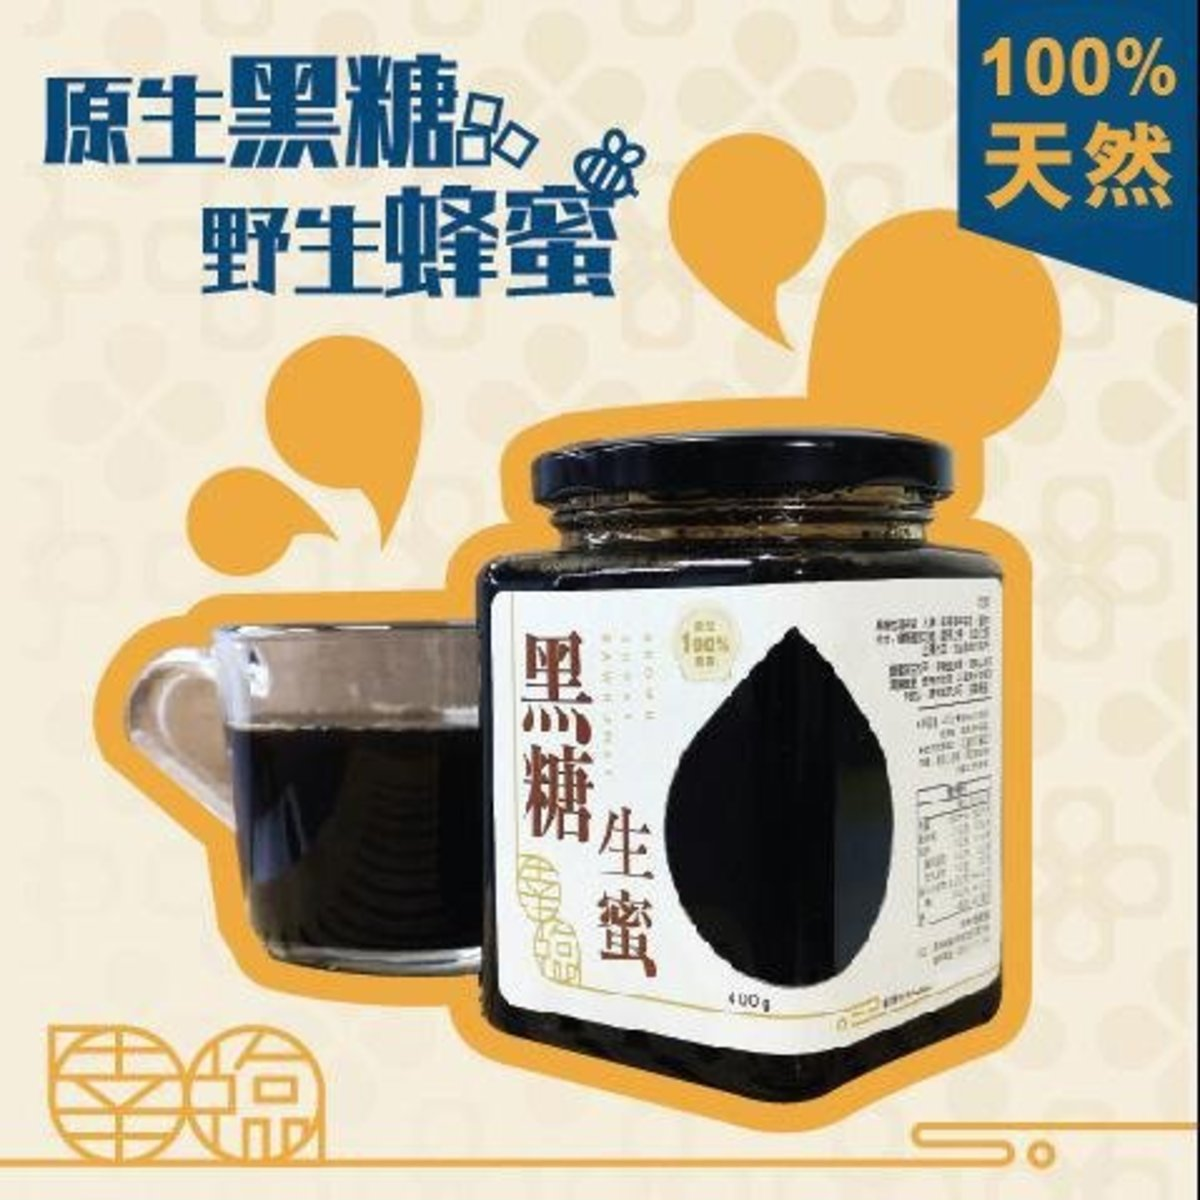 1 Bottle - Brown Sugar Rawhoney (400g) + 1 Unit - Happy Holidays Buy 1 Get 1 Free Redemption Coupon